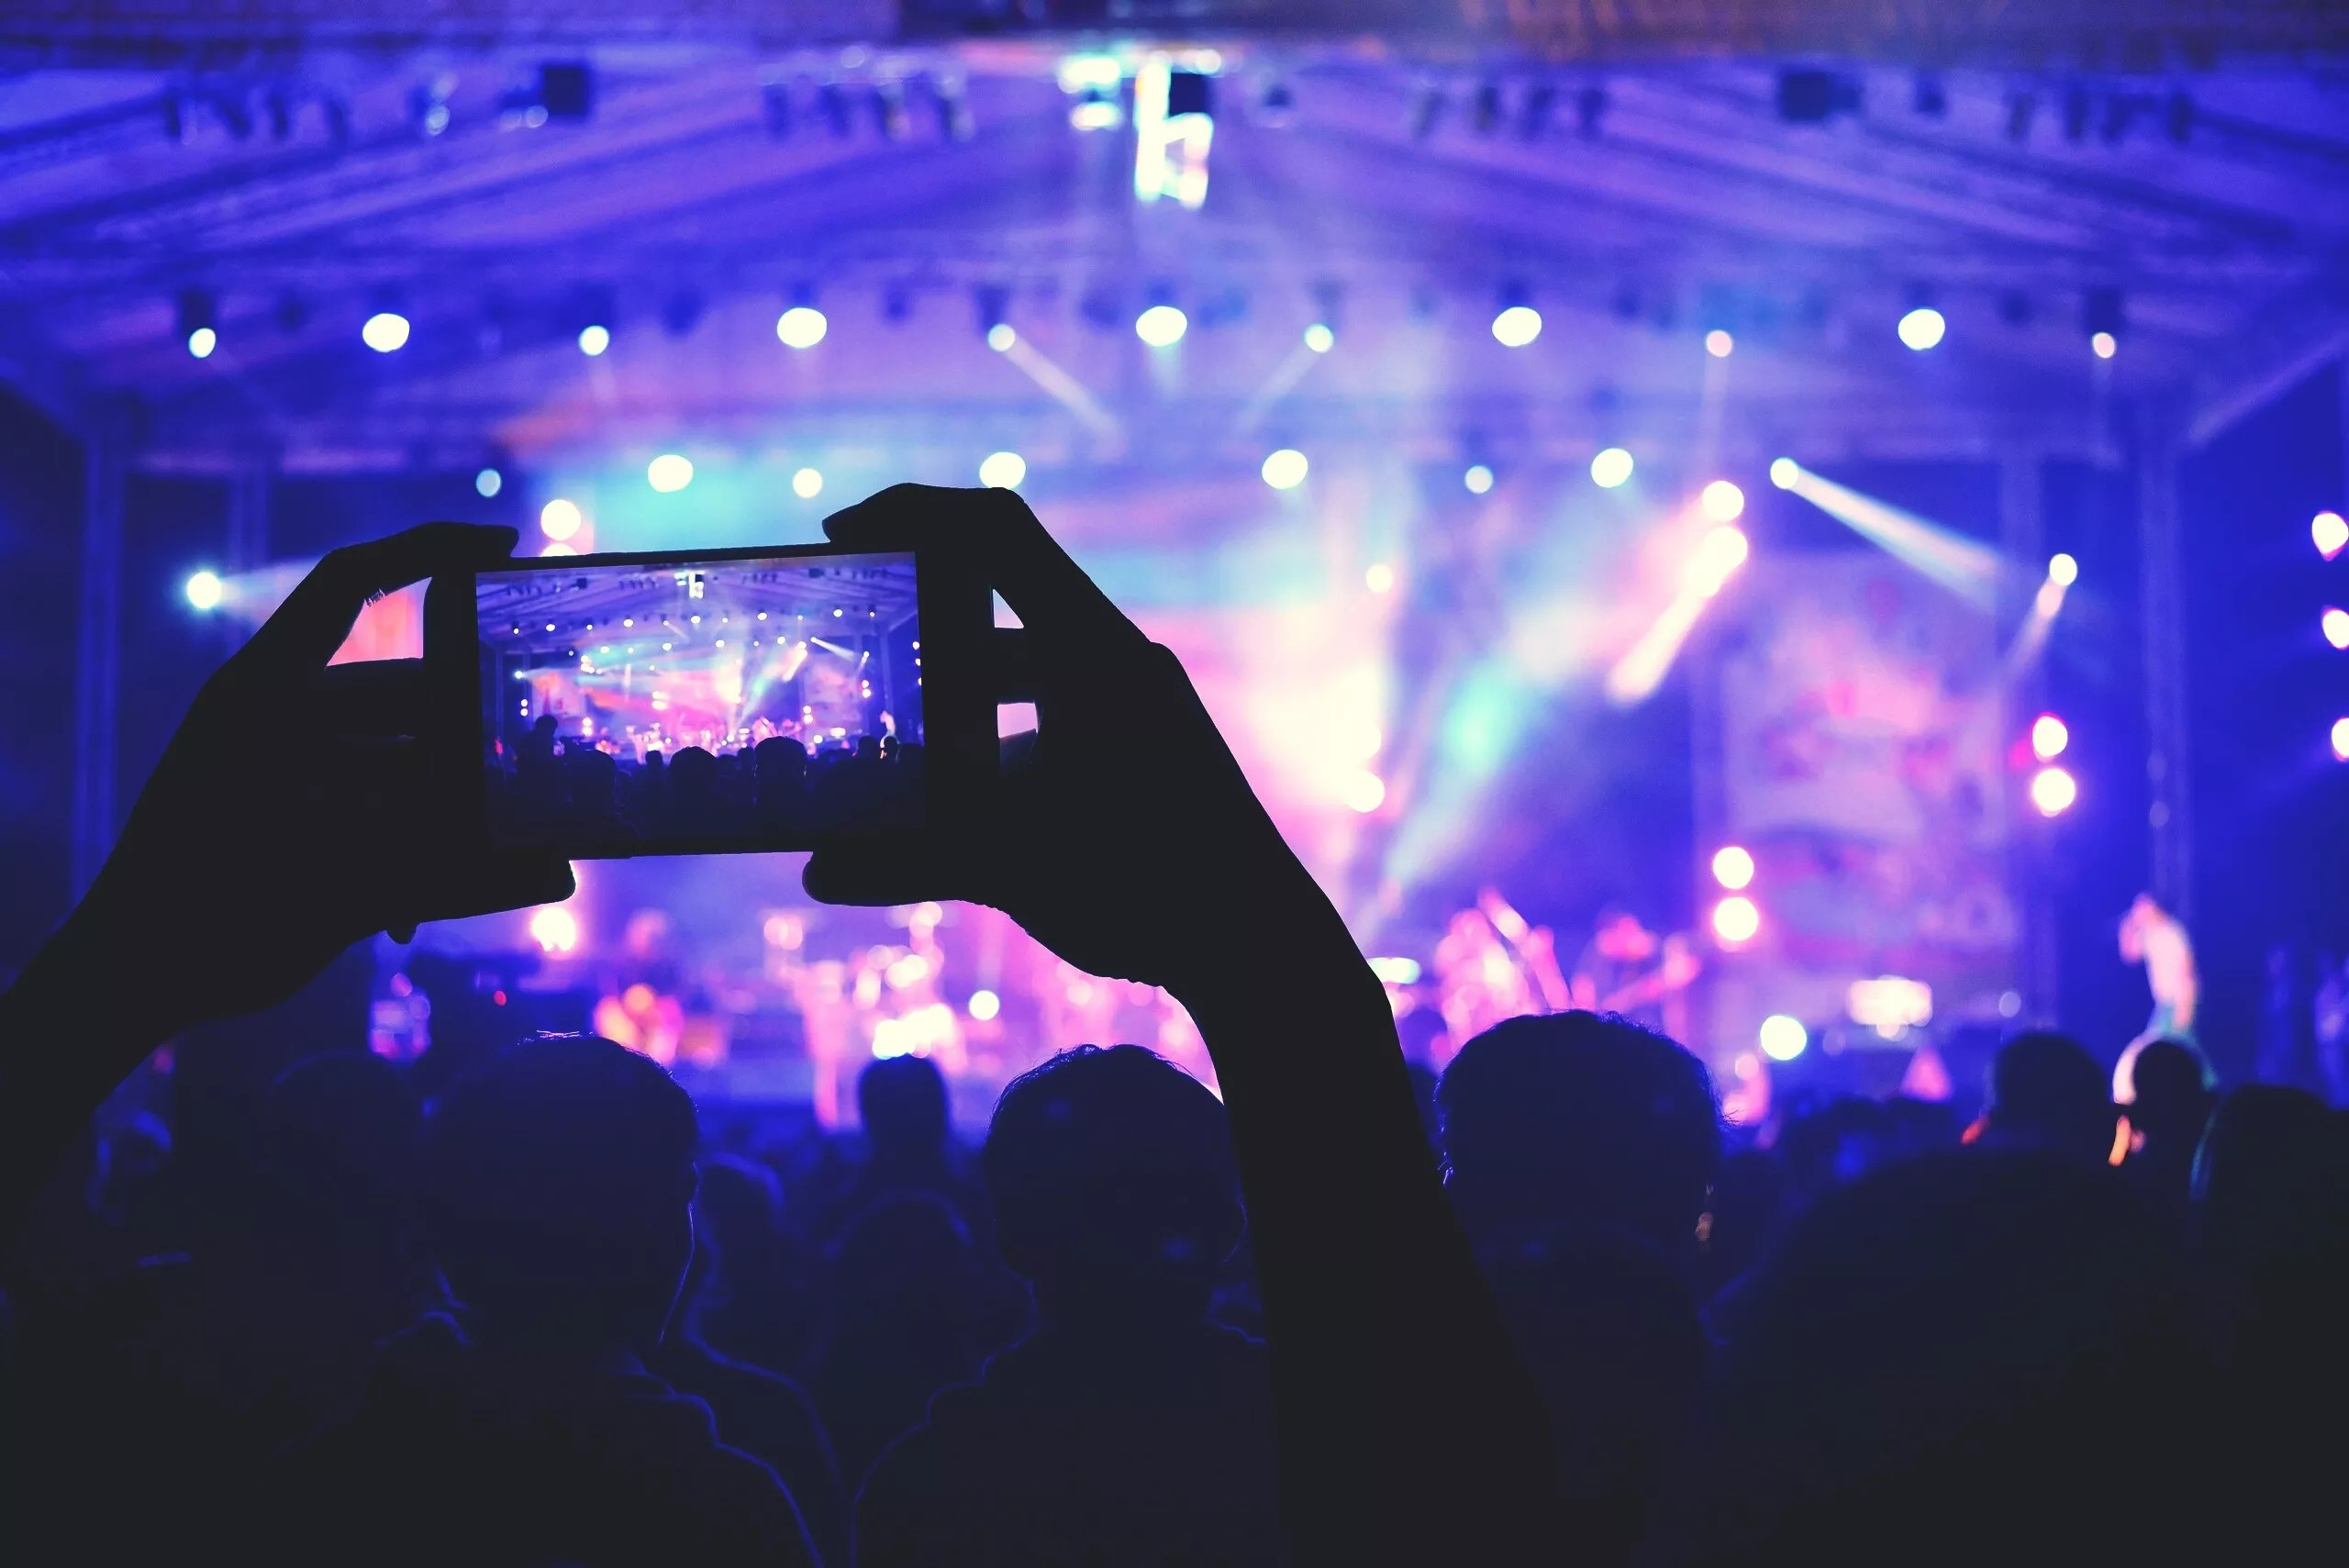 An image of someone taking a photo of a concert with their smartphone.